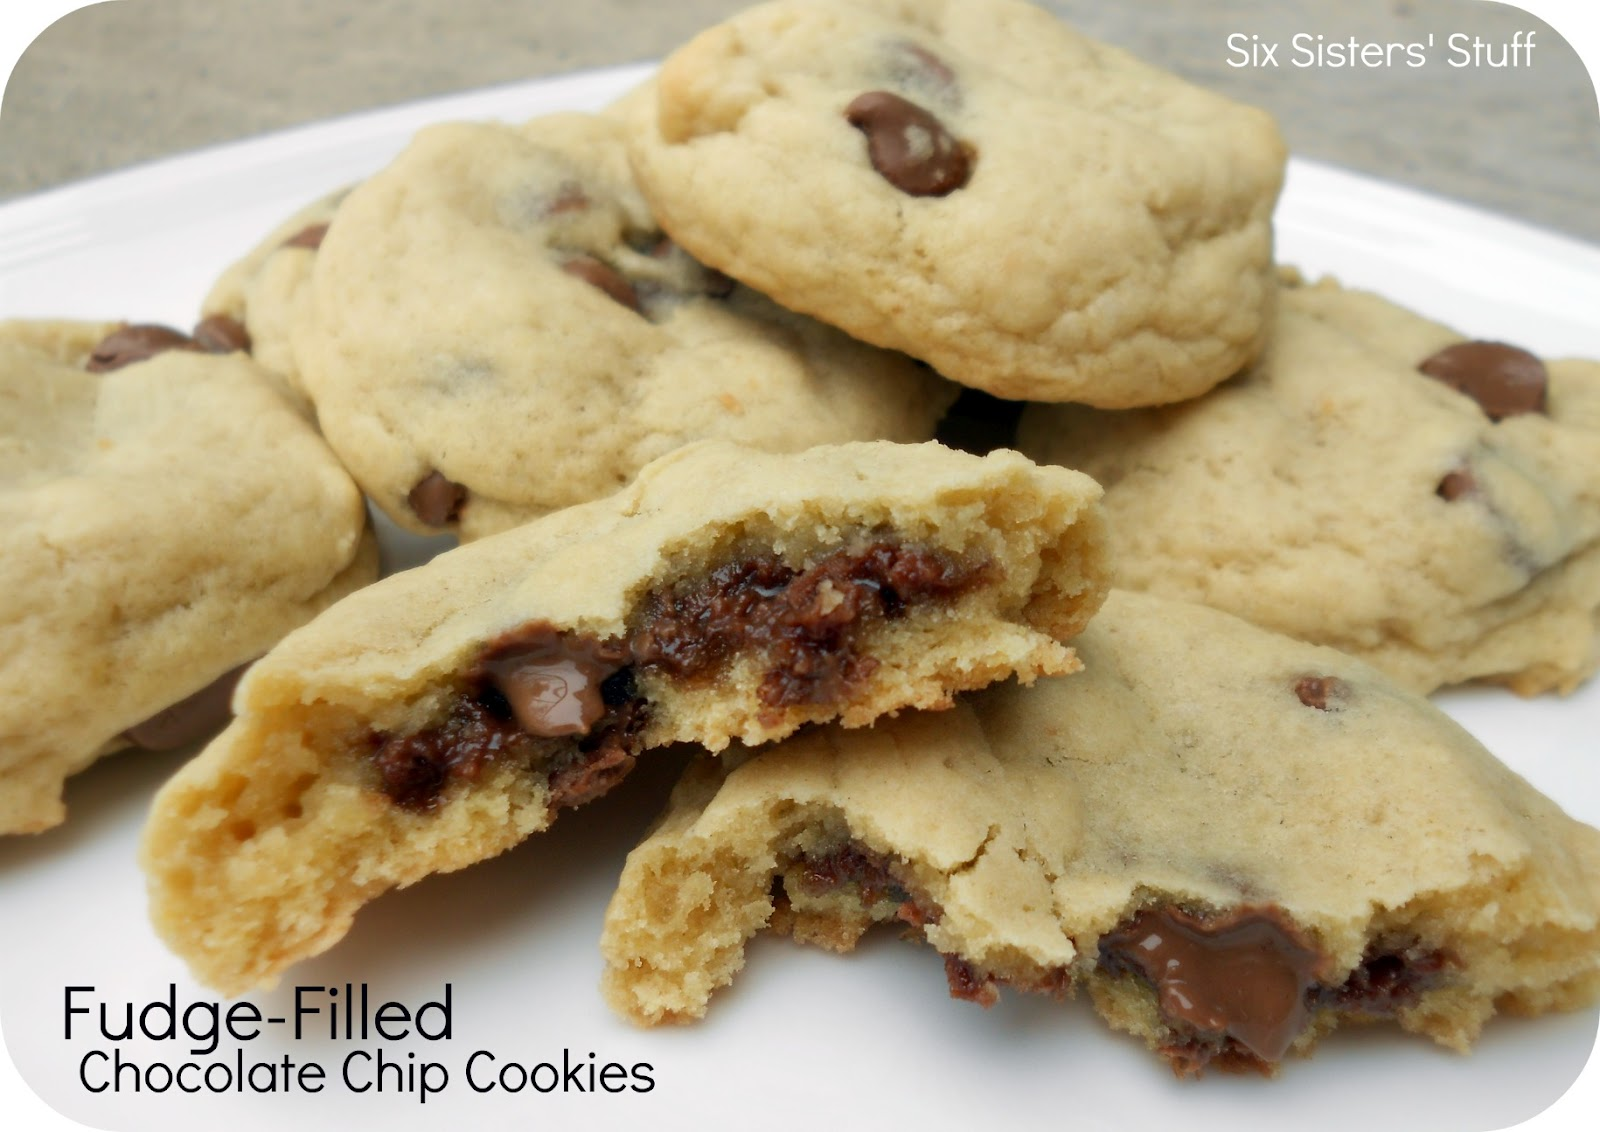 Fudge-Filled Chocolate Chip Cookies Recipe | Six Sisters' Stuff